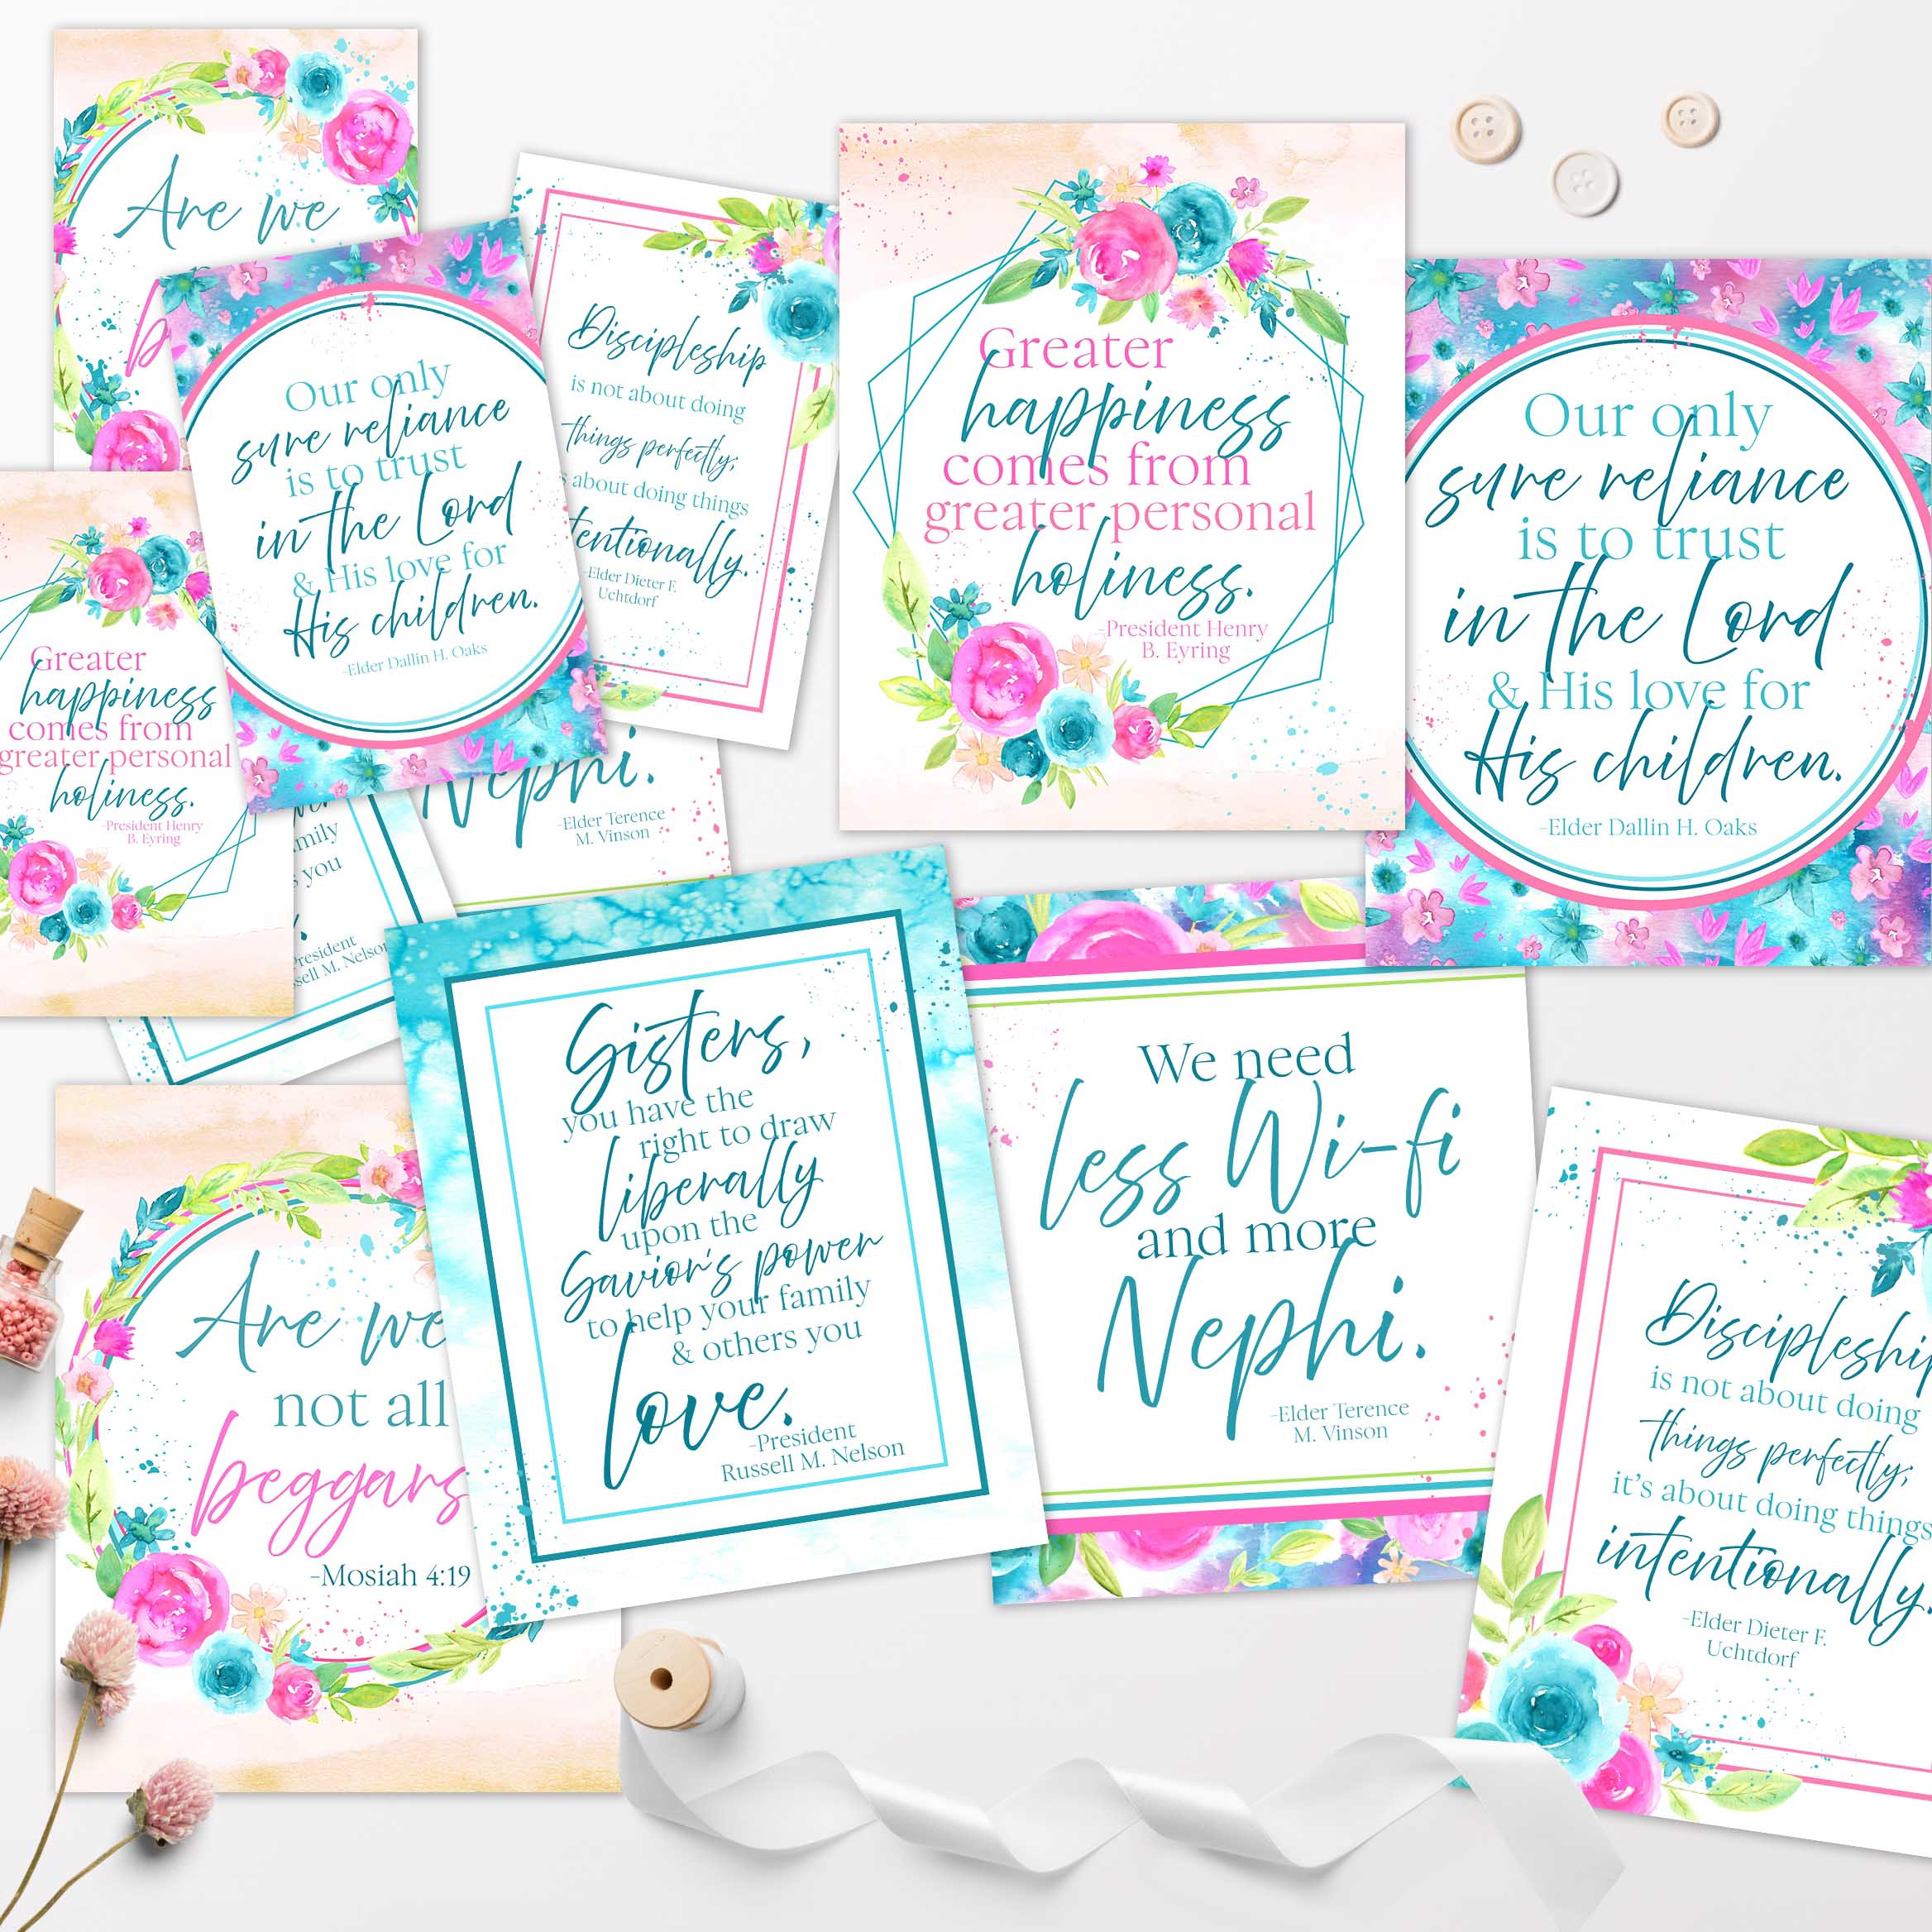 October 2019 General Conference Free Quote Printables Ministering Printables